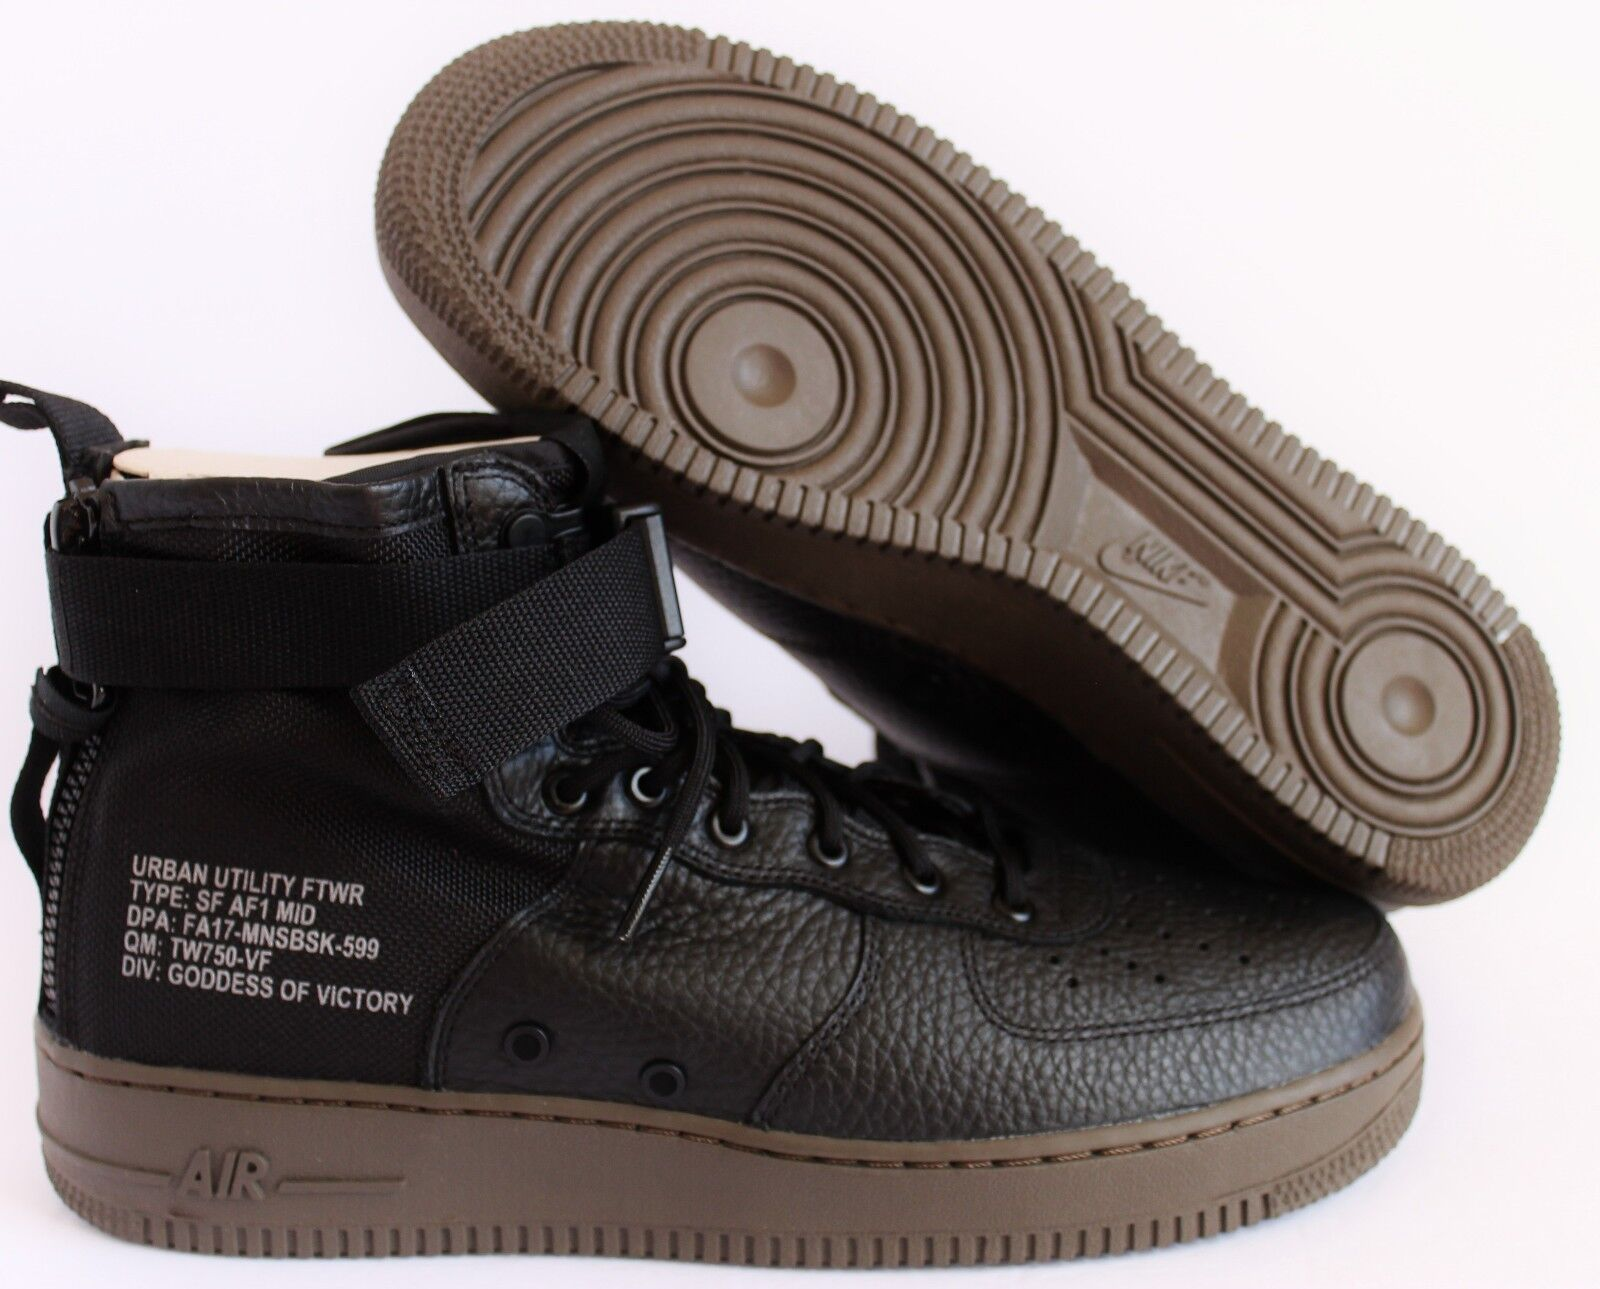 Nike air force schwarz-dark 1 sf af1 mitte spezialgebiet schwarz-dark force hazel sz 10,5 3c3560